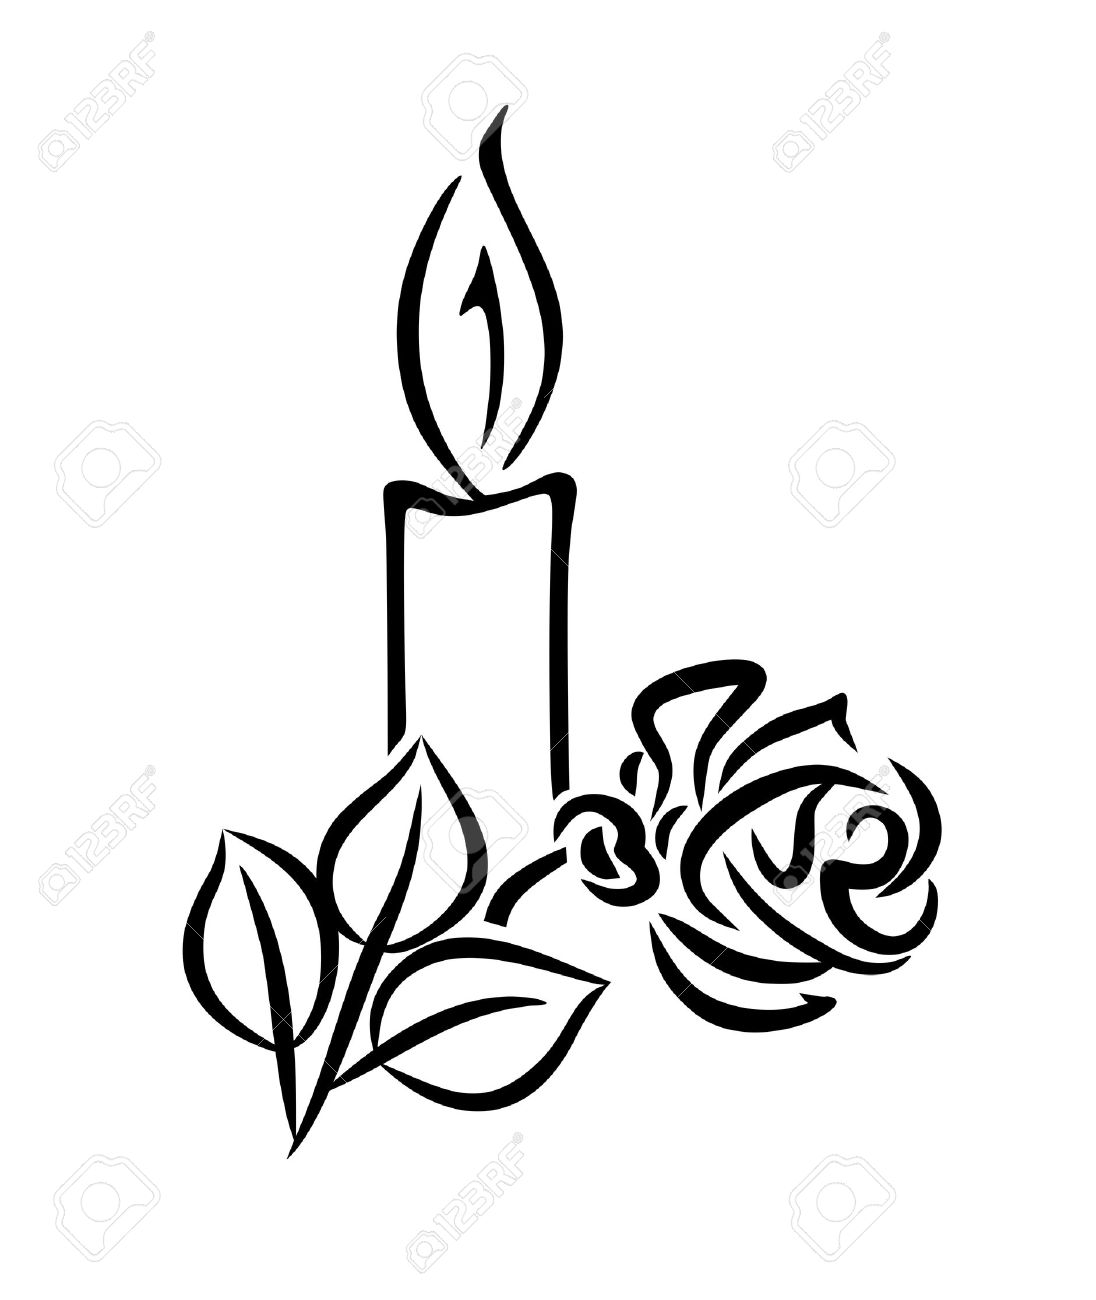 Black And White Illustration Of A Candle With Rose Stock Photo ... for Candle Clip Art Black And White  75tgx